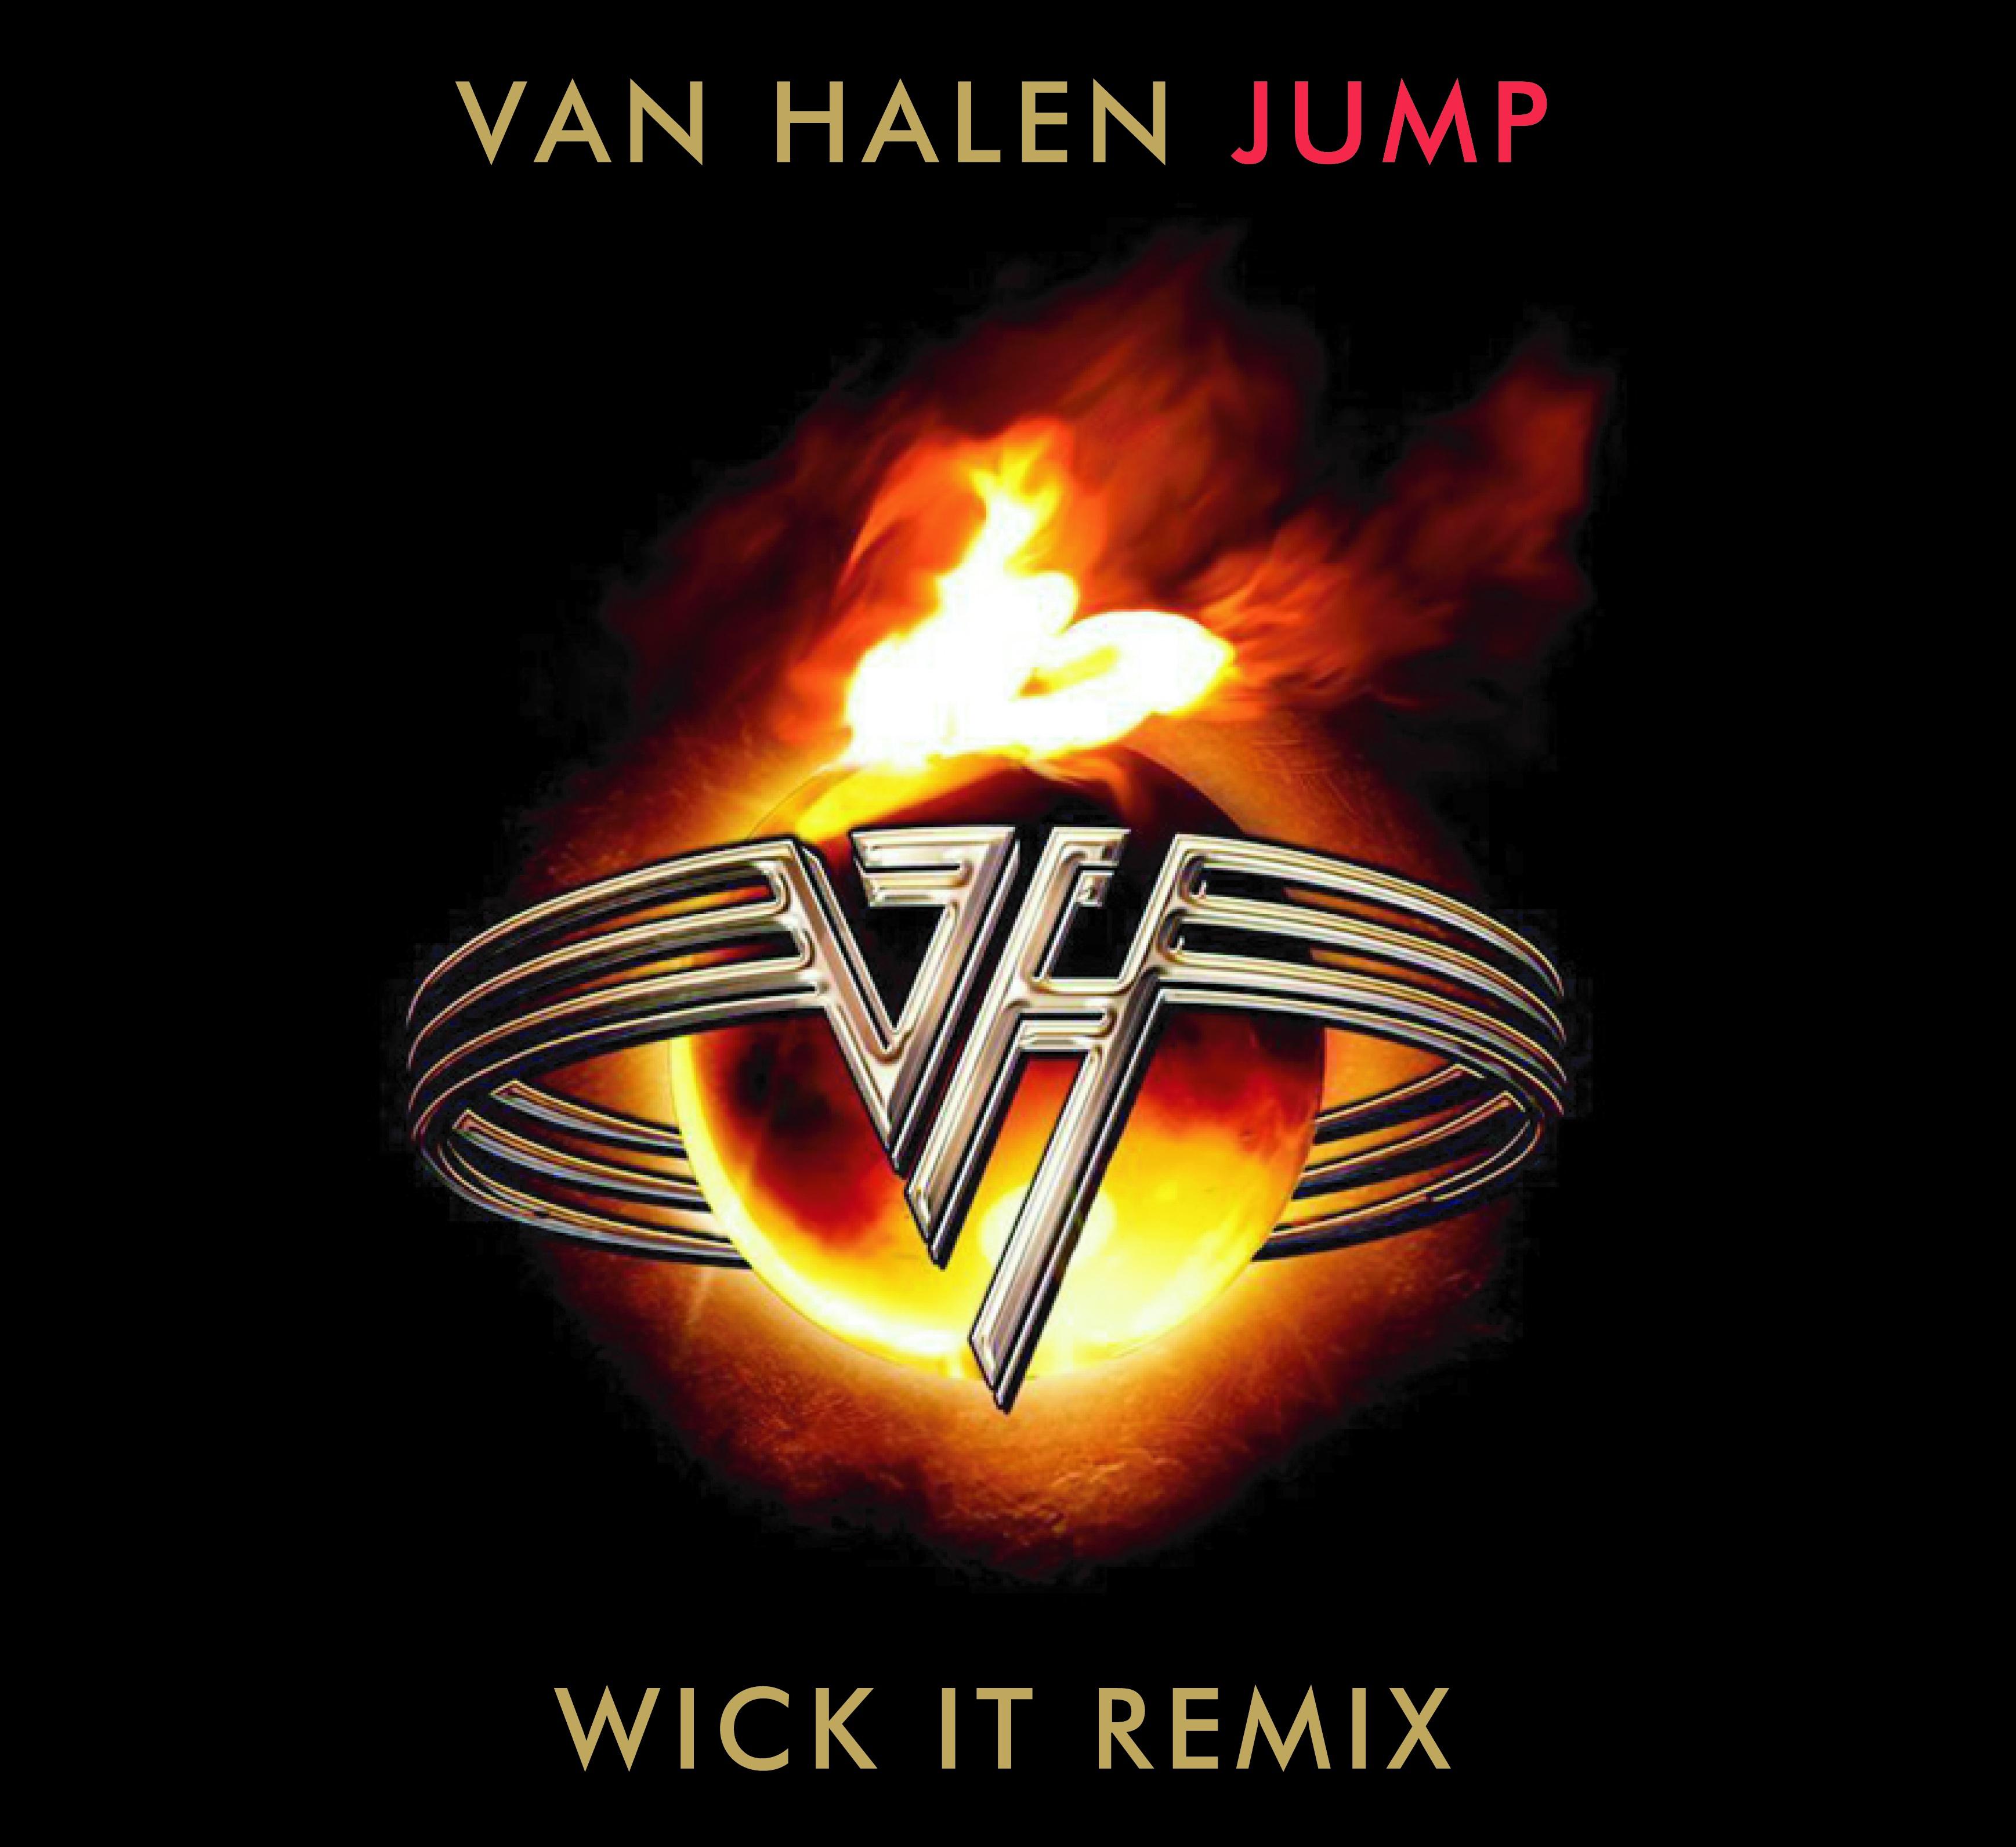 Van Halen – Jump (Wick-it Remix) – By Wick-It the Instigator